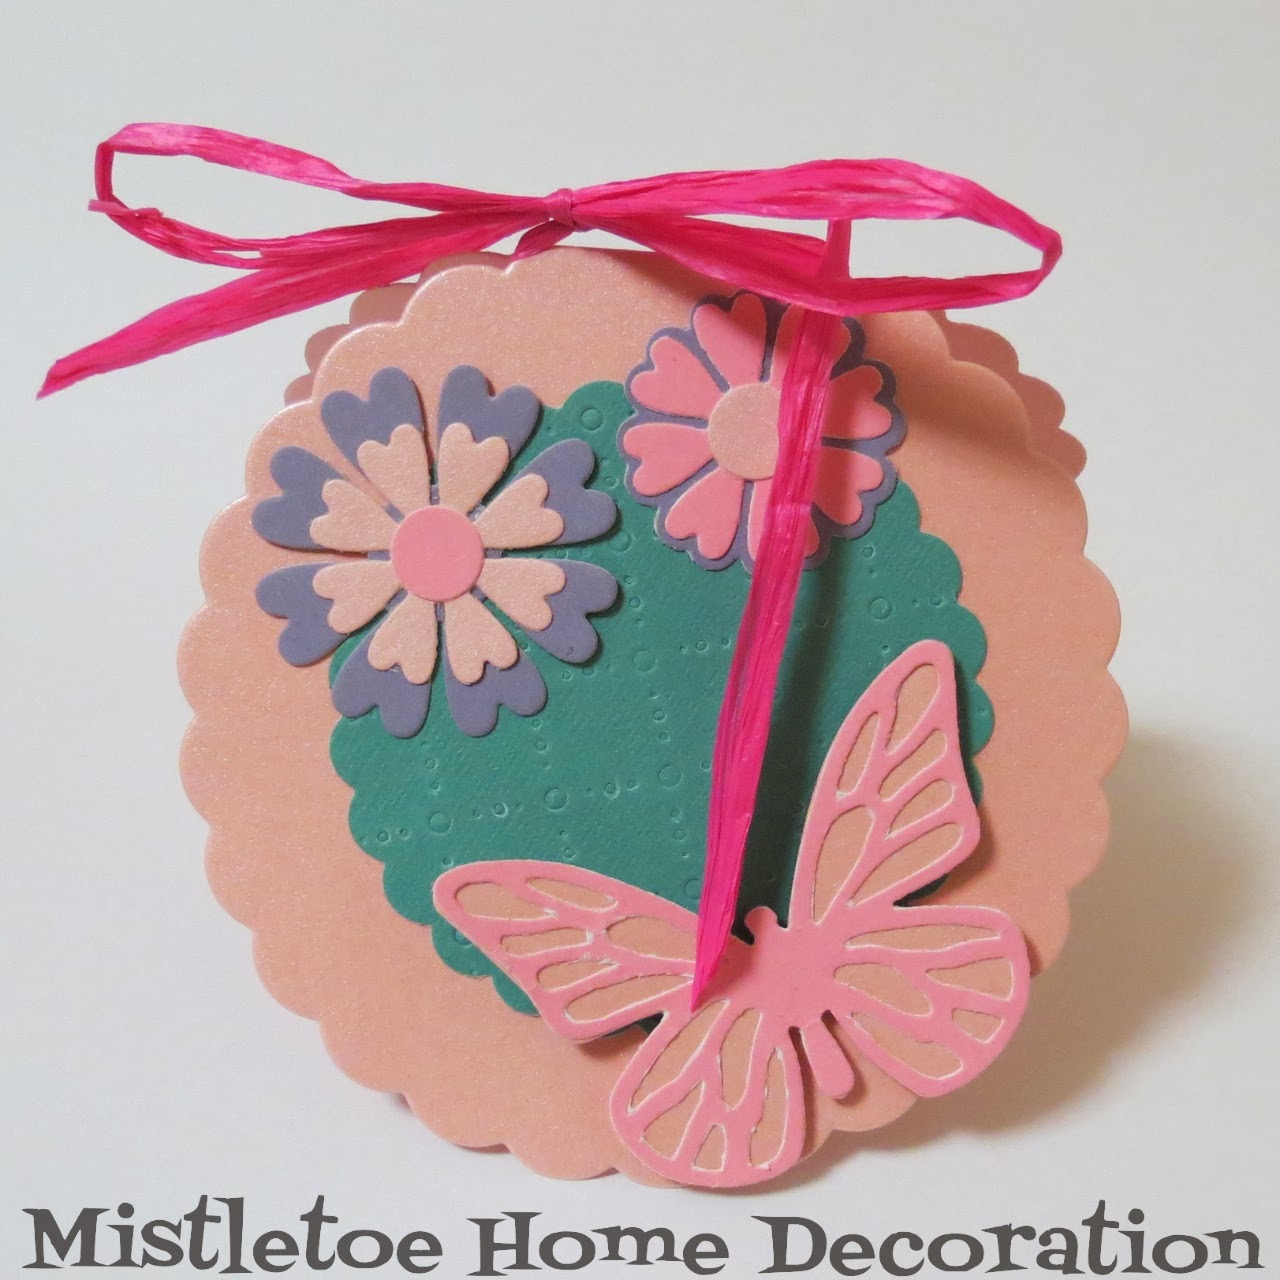 Mistletoe home designs sizzix diy birthday card with flowers and sizzix diy birthday card with flowers and butterfly bookmarktalkfo Image collections